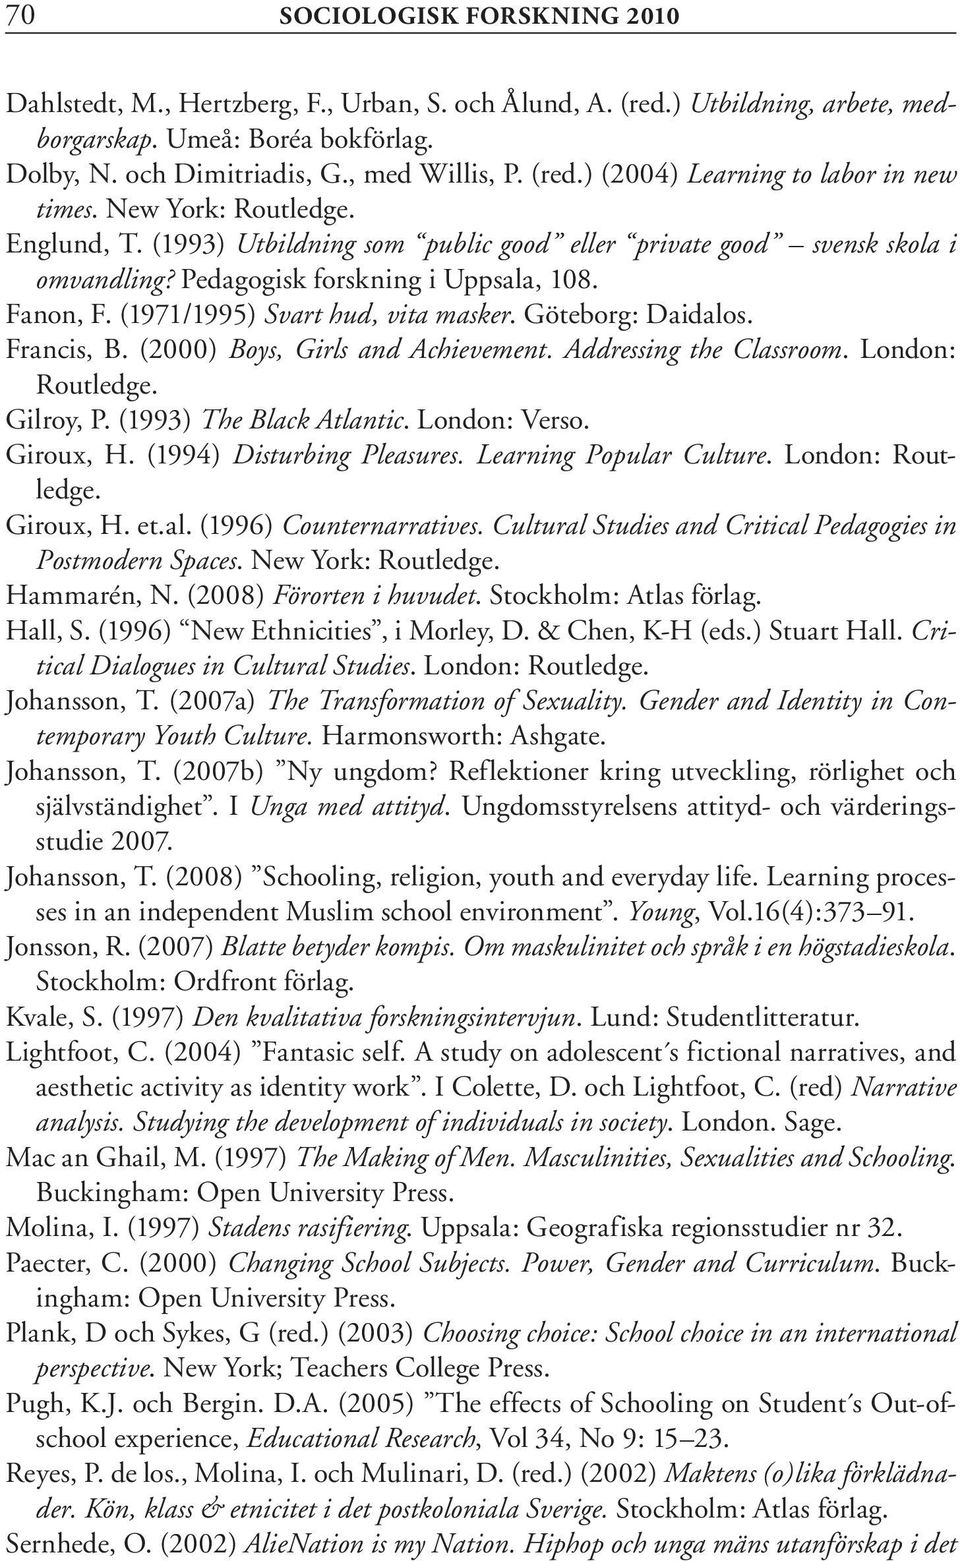 Göteborg: Daidalos. Francis, B. (2000) Boys, Girls and Achievement. Addressing the Classroom. London: Routledge. Gilroy, P. (1993) The Black Atlantic. London: Verso. Giroux, H.